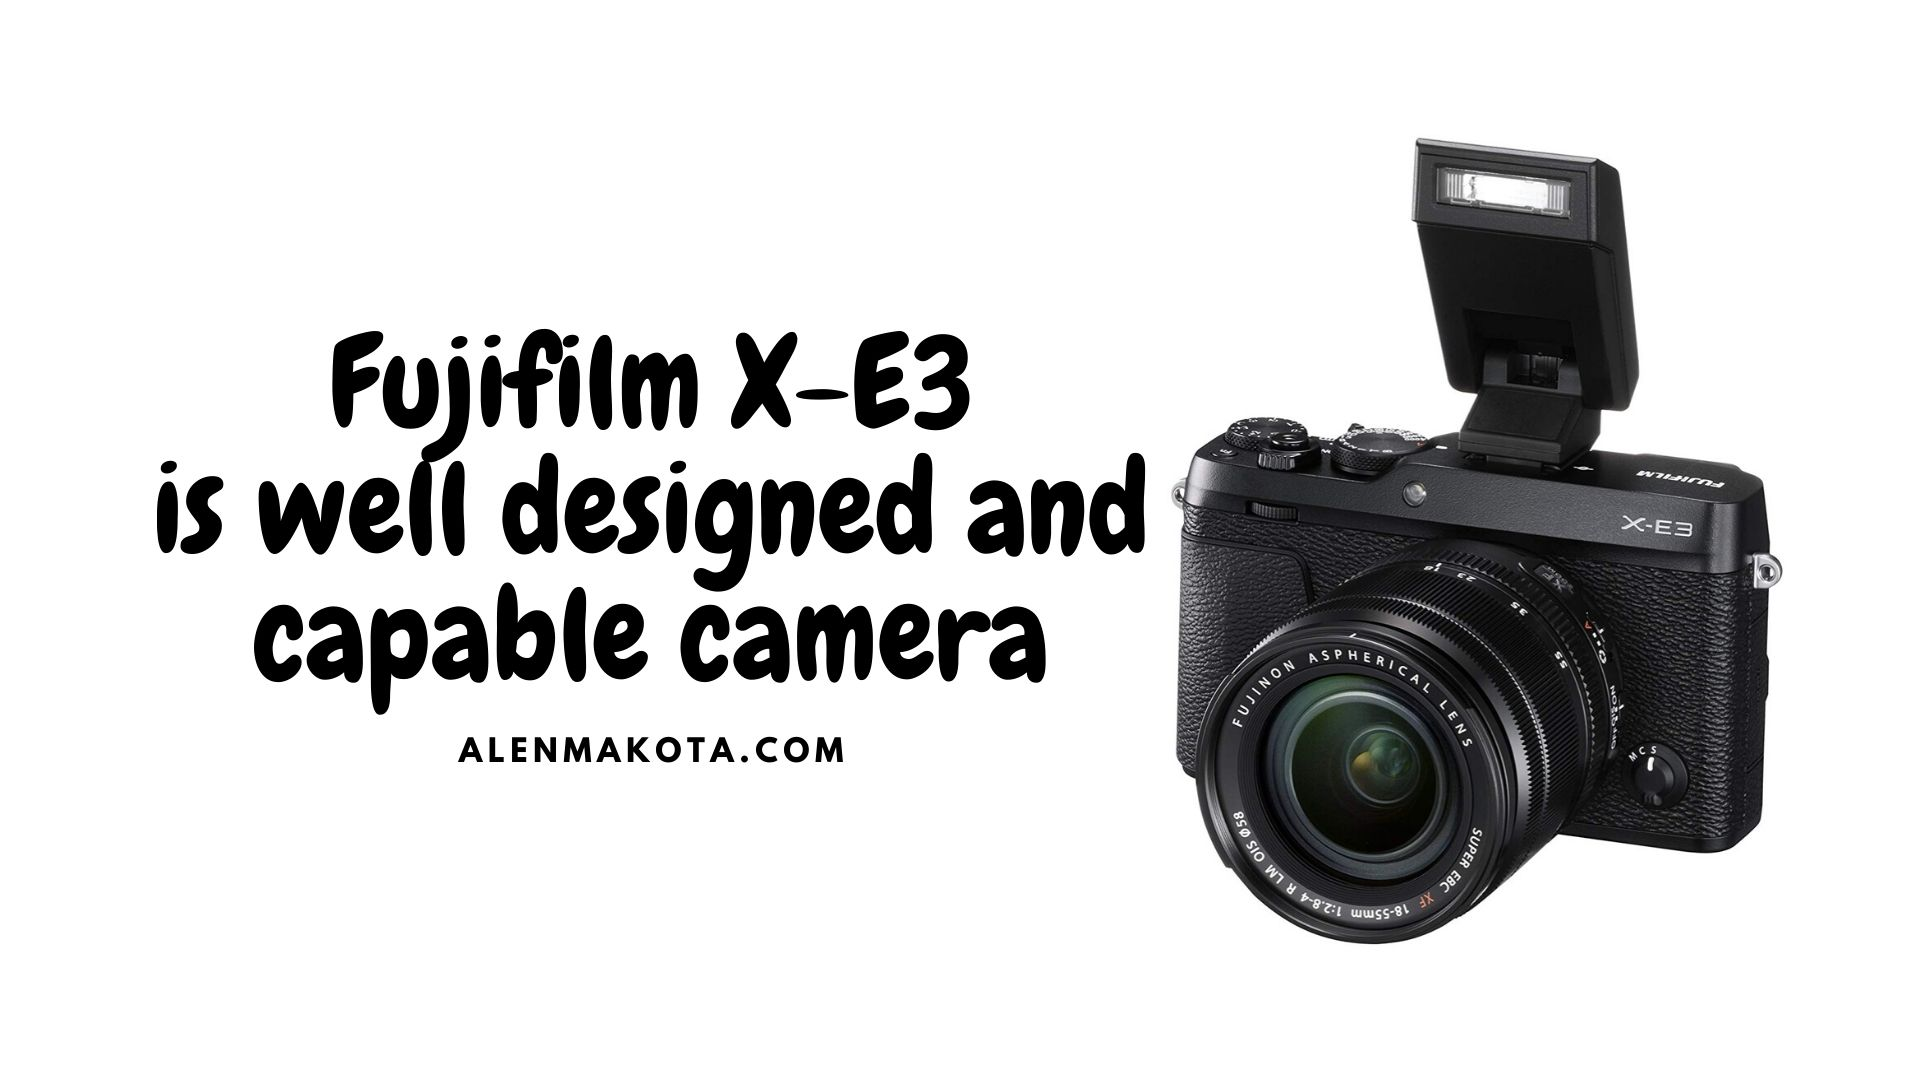 Fujifilm X-E3 with XF 18-55mm f2.8-4 Kit